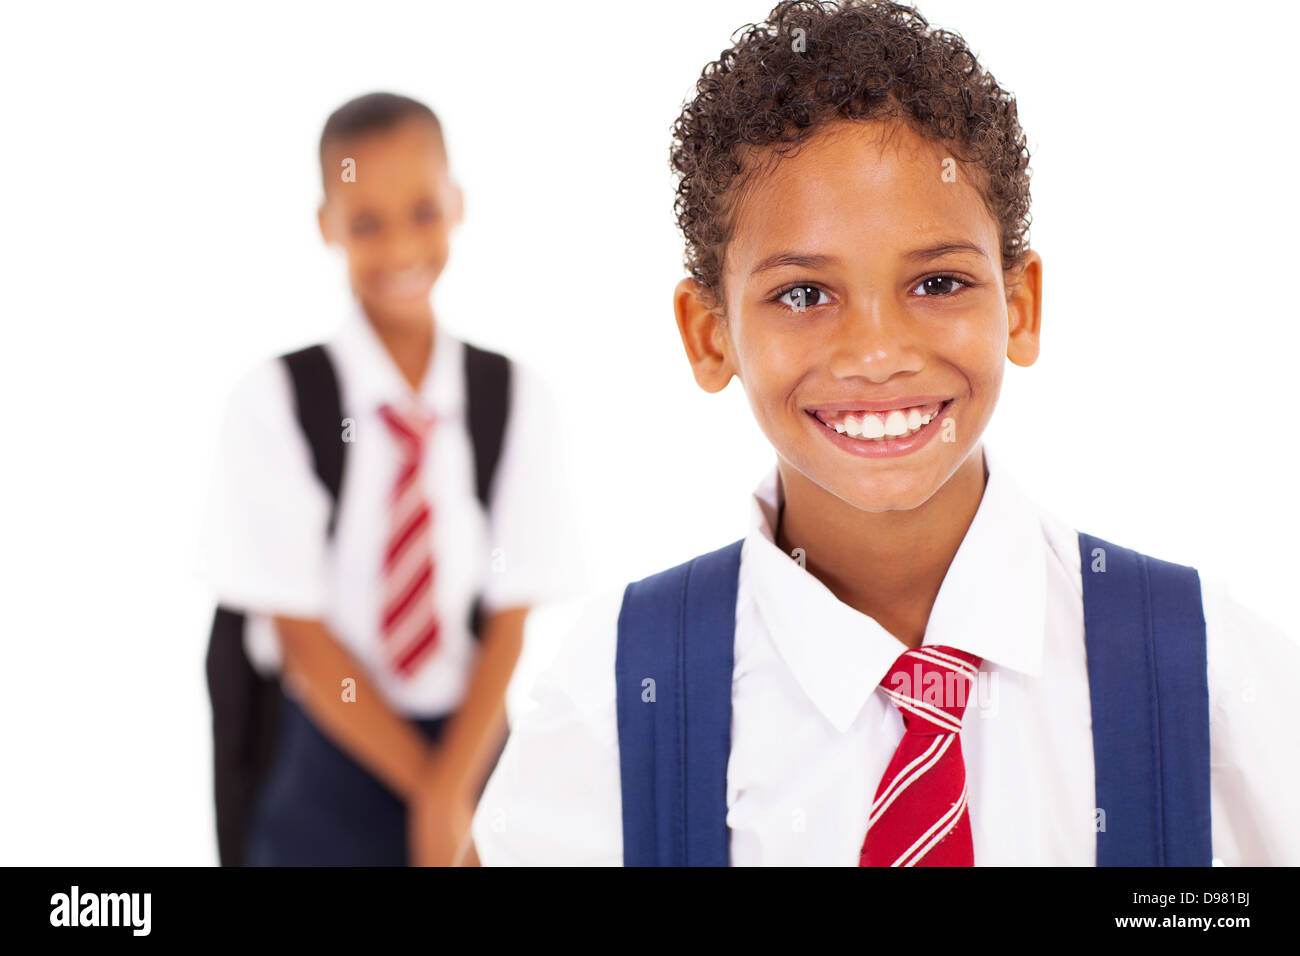 cute elementary schoolboy in front of classmate - Stock Image